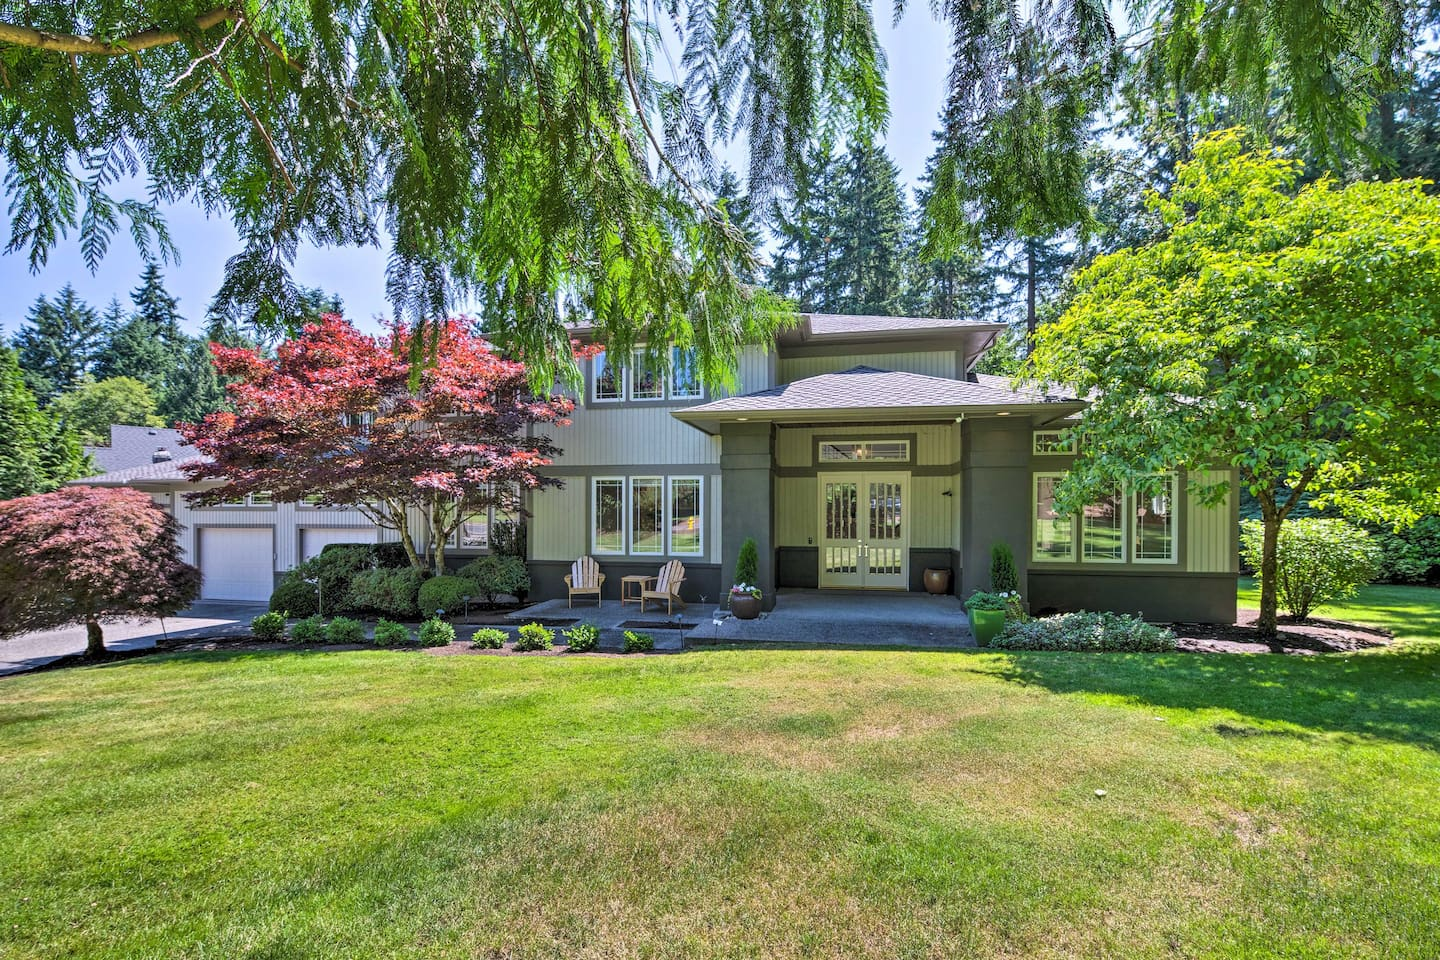 Discover the splendors of Woodinville from this 4-bedroom, 3.5-bath home!